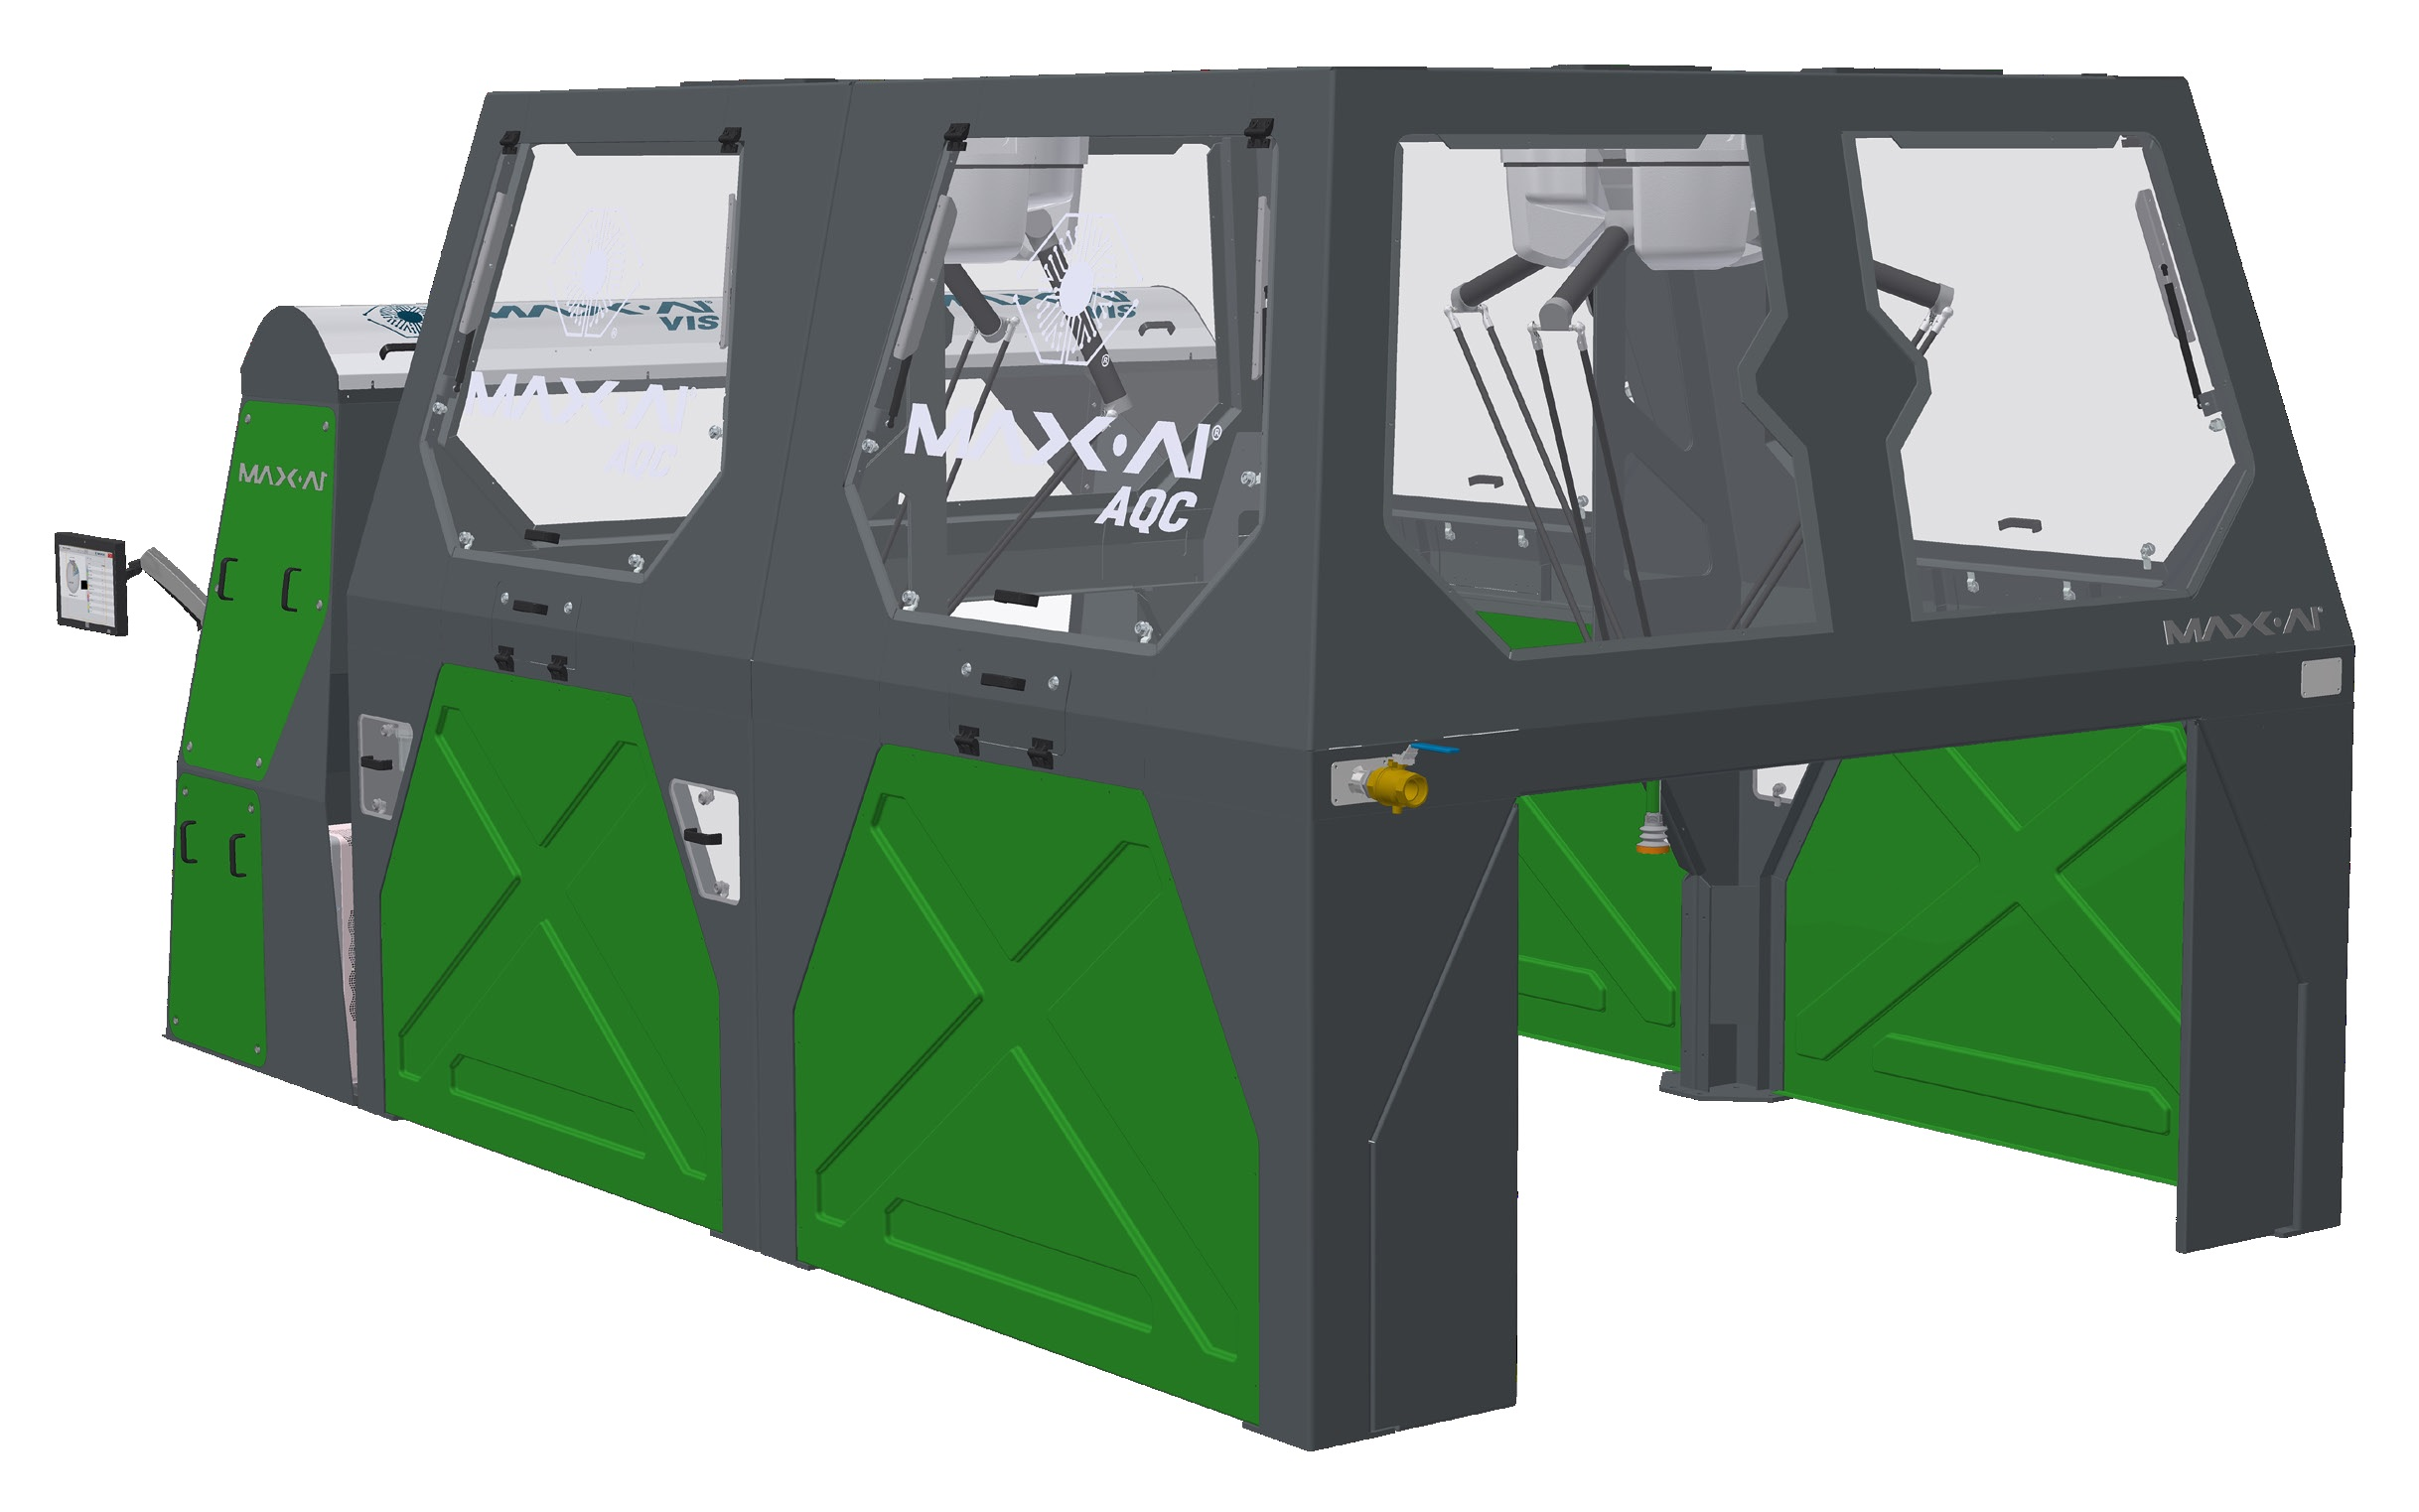 Max-AI - Model AQC-2 - Autonomous Quality Control (AQCs) Sorting Machine